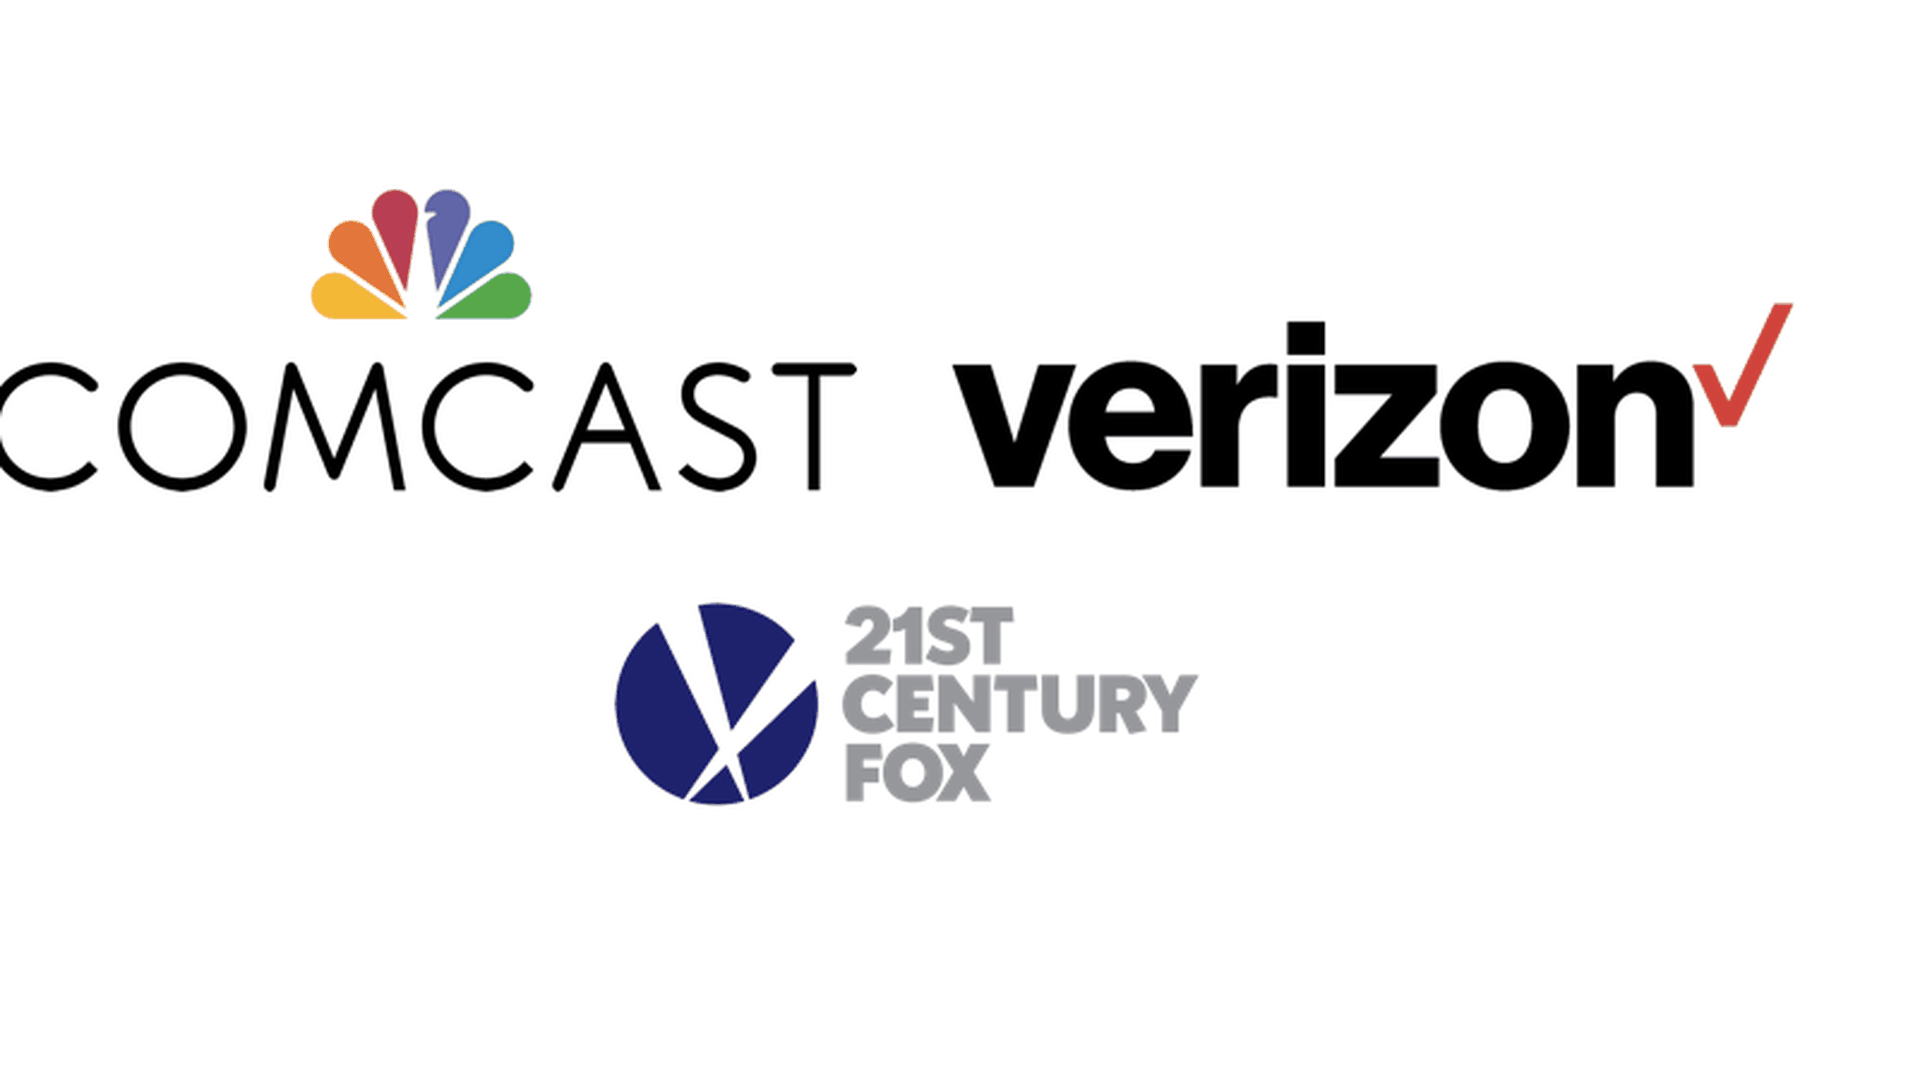 Comcast and Verizon also considering Fox acquisition - Axios